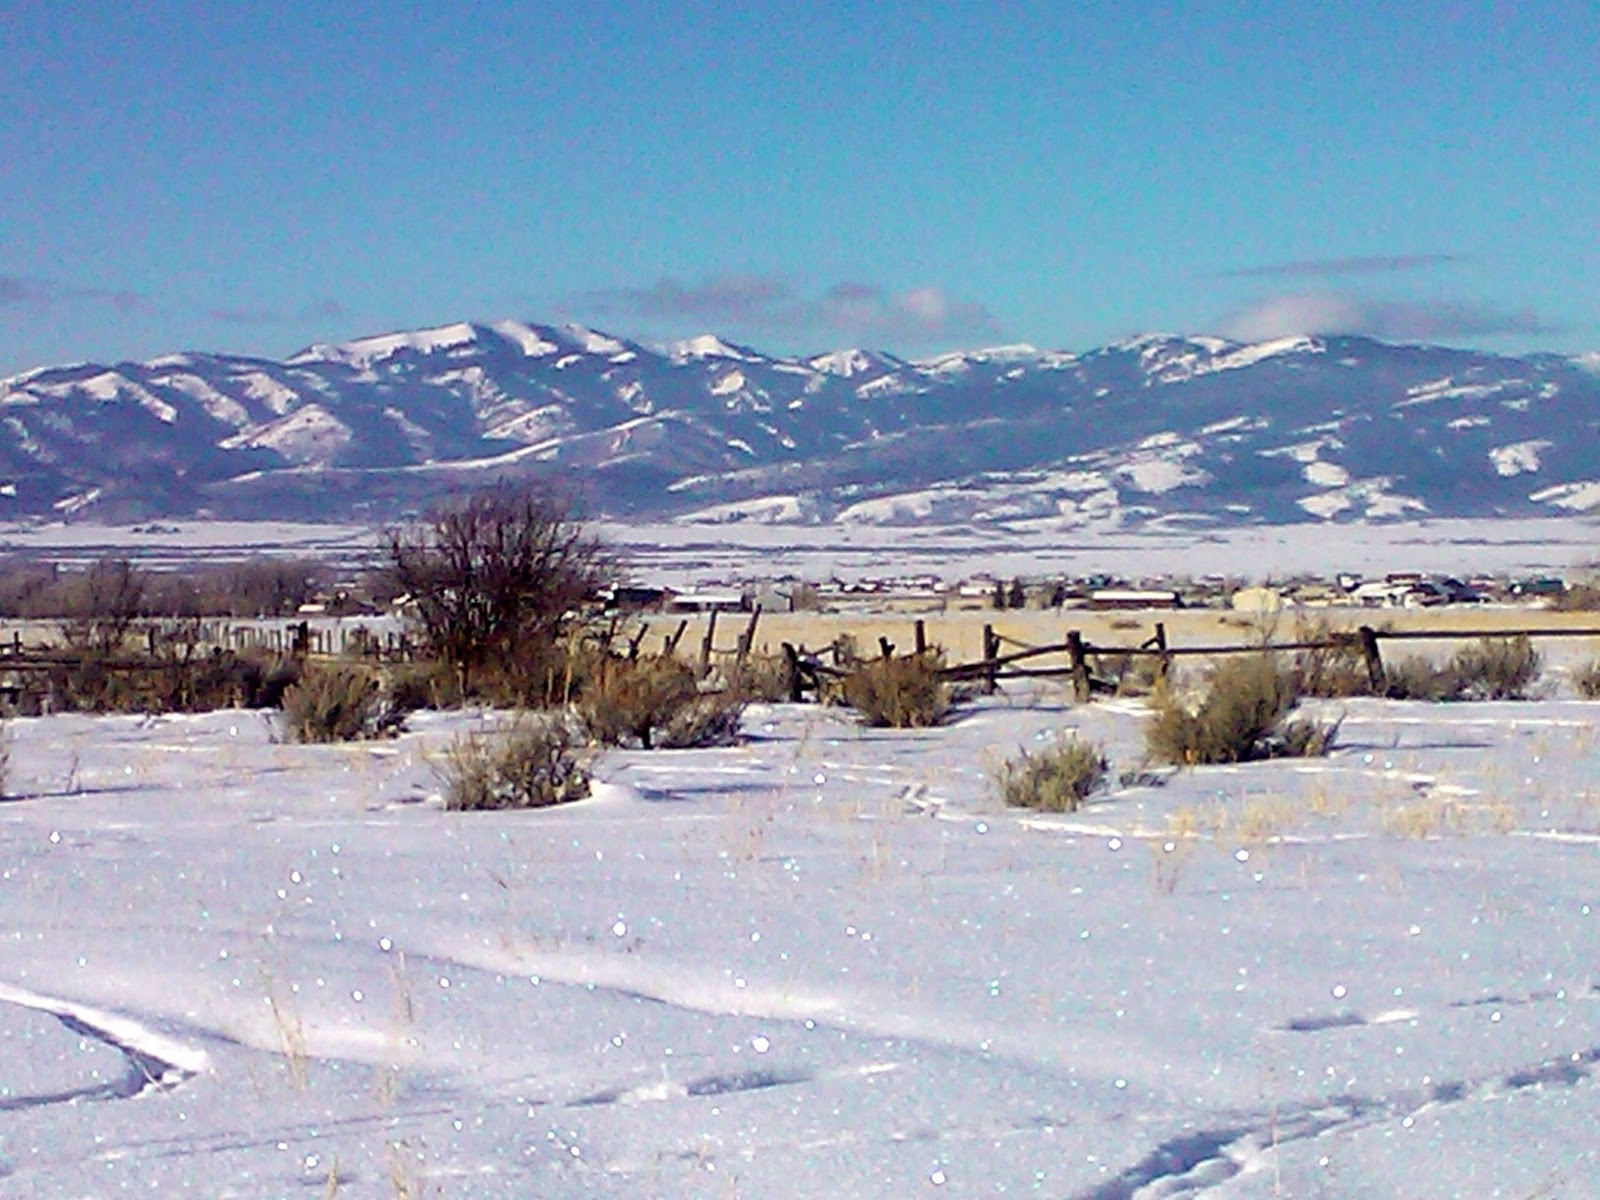 Happy Holidays from Driggs, Victor, and Teton Valley, Idaho.